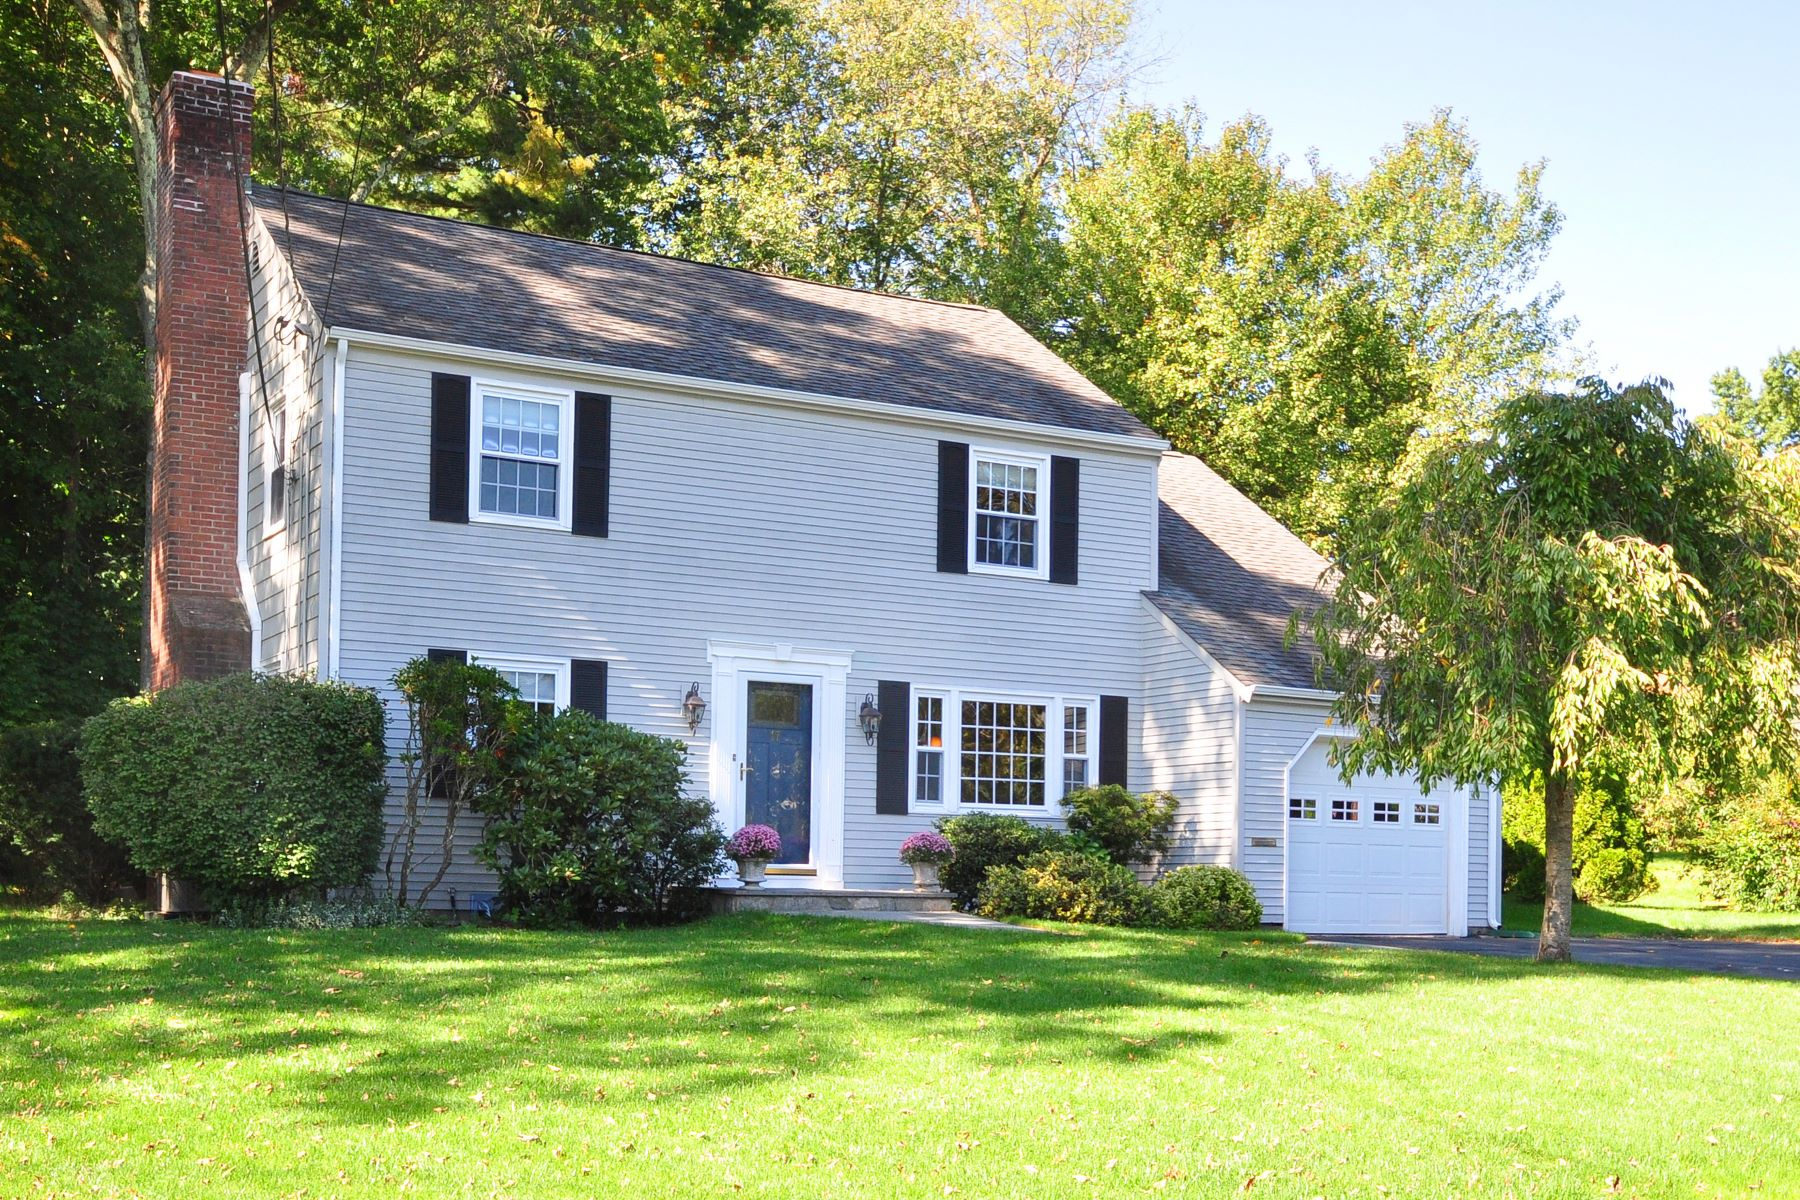 Single Family Homes for Sale at 17 Day Road West Hartford, Connecticut 06117 United States